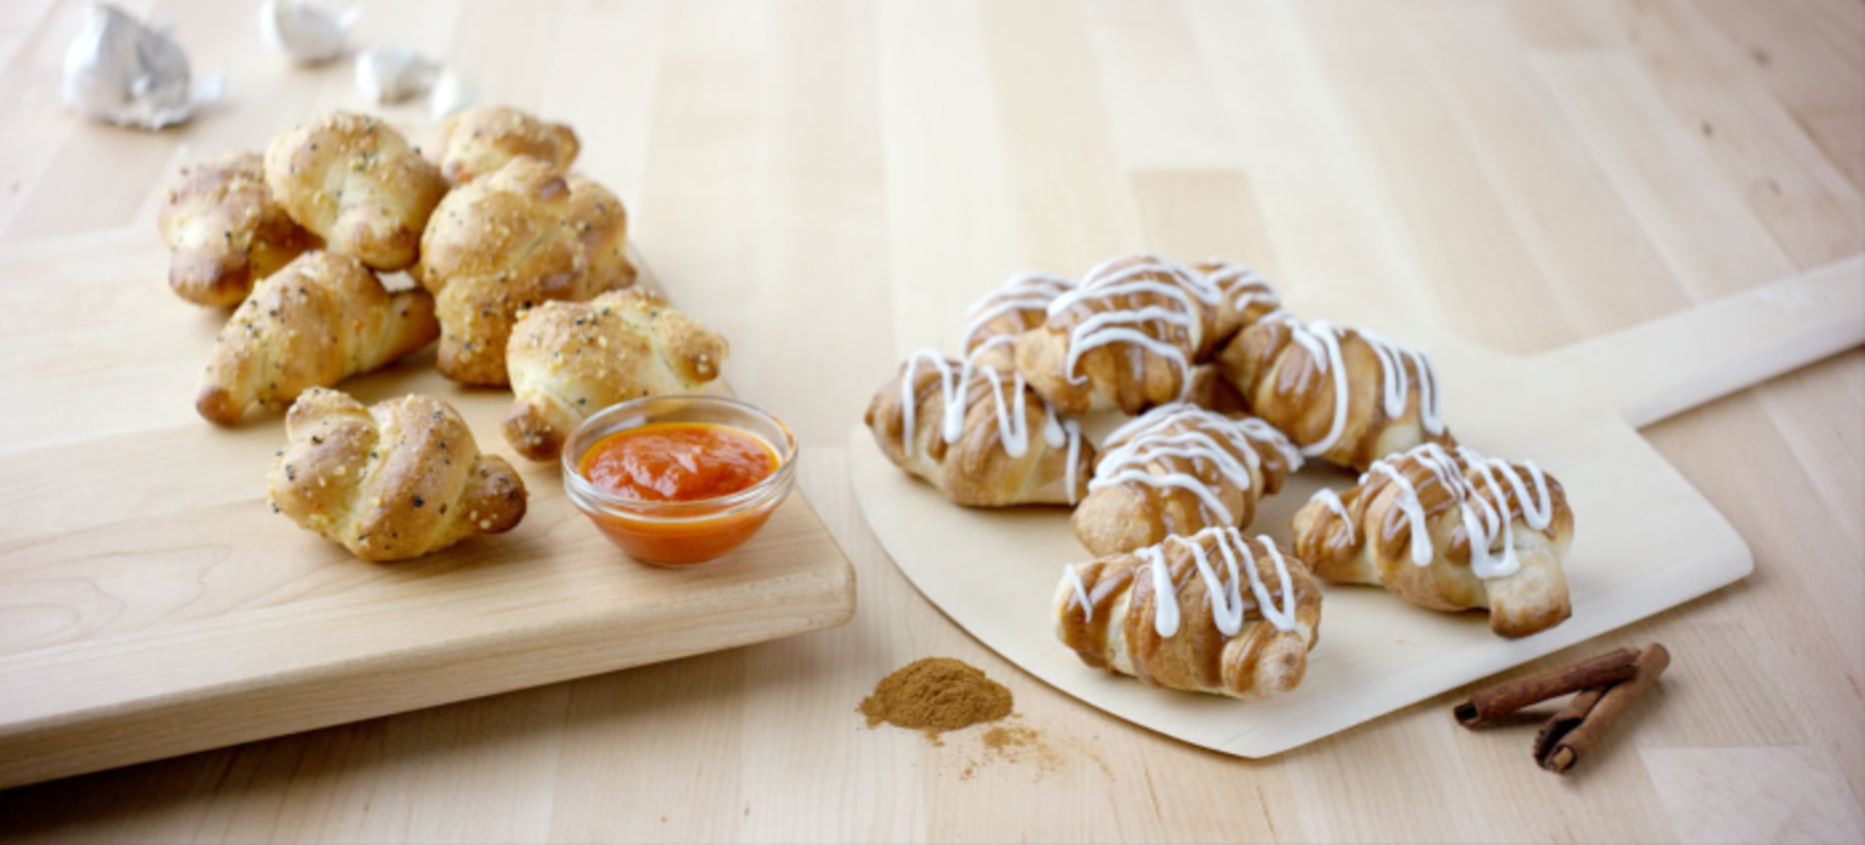 ... Knots papa john's sweetens the deal with all-new cinnamon knots